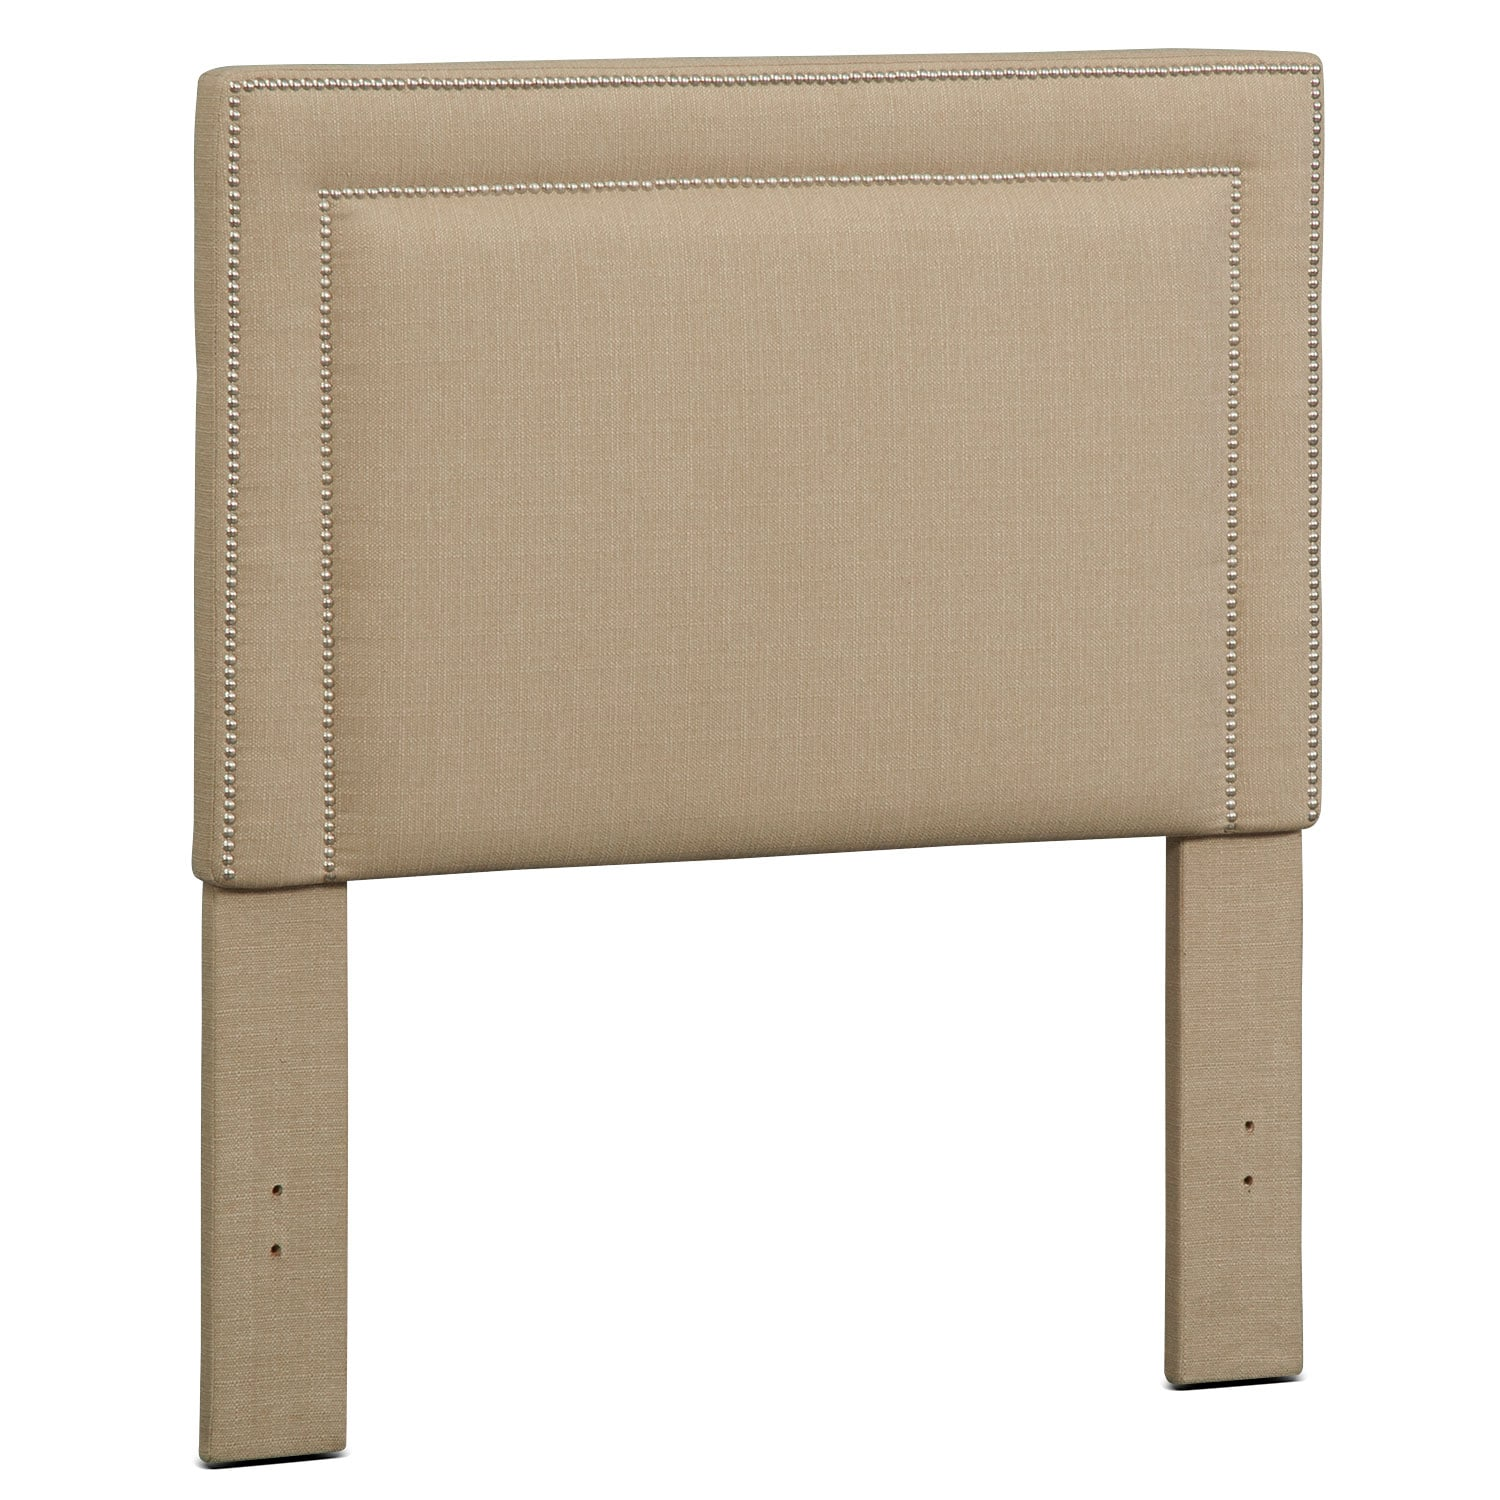 Natalie Twin Upholstered Headboard - Tan